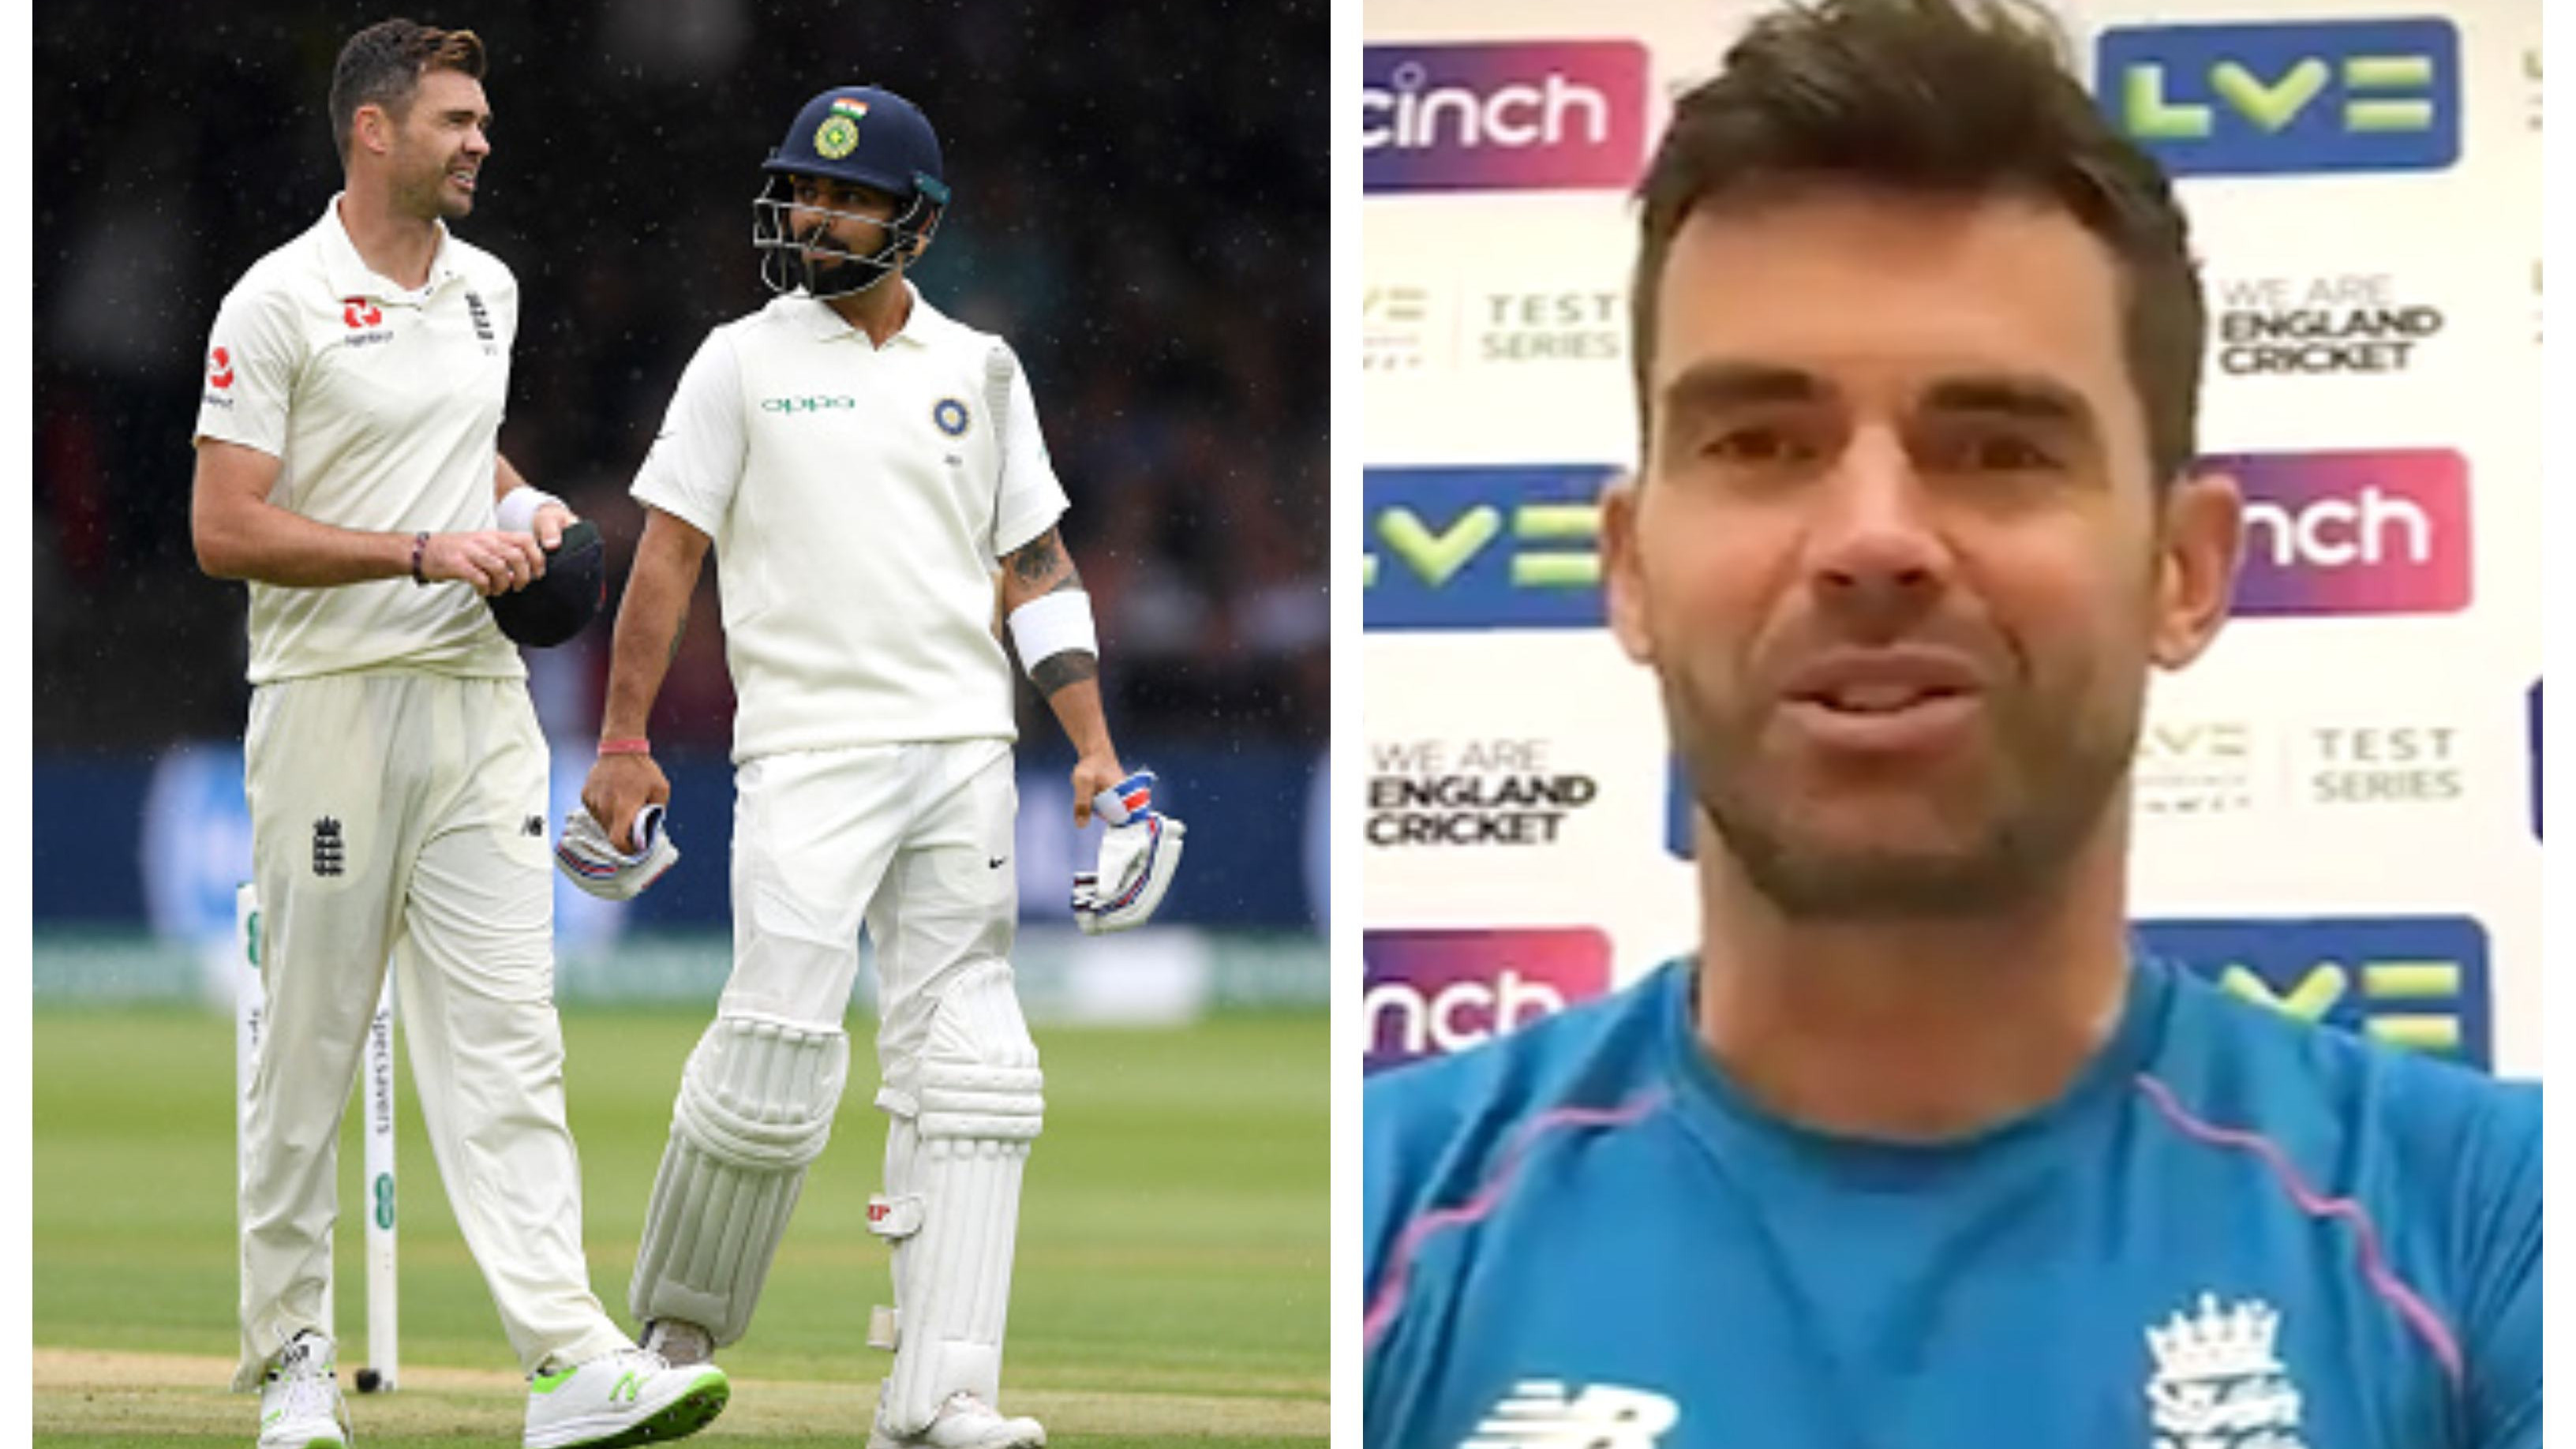 ENG v IND 2021: James Anderson hails Virat Kohli as one of world's best, says he is excited for the battle